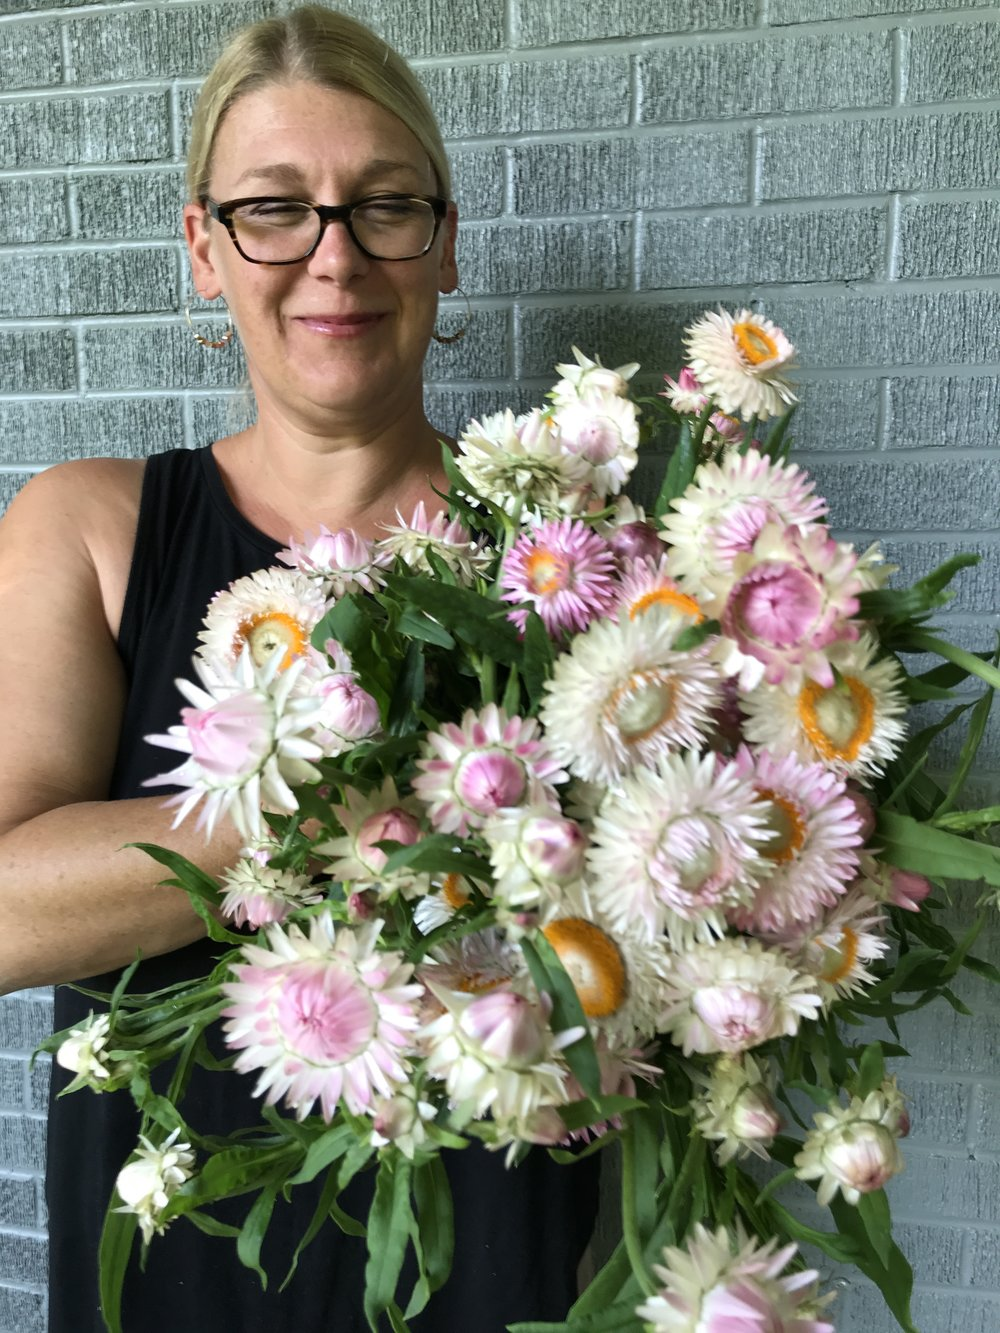 Abigail Helberg Moffitt owner of bloom - flower farm, florist, and delivery in Black Mountain and the Asheville area of North Carolina.